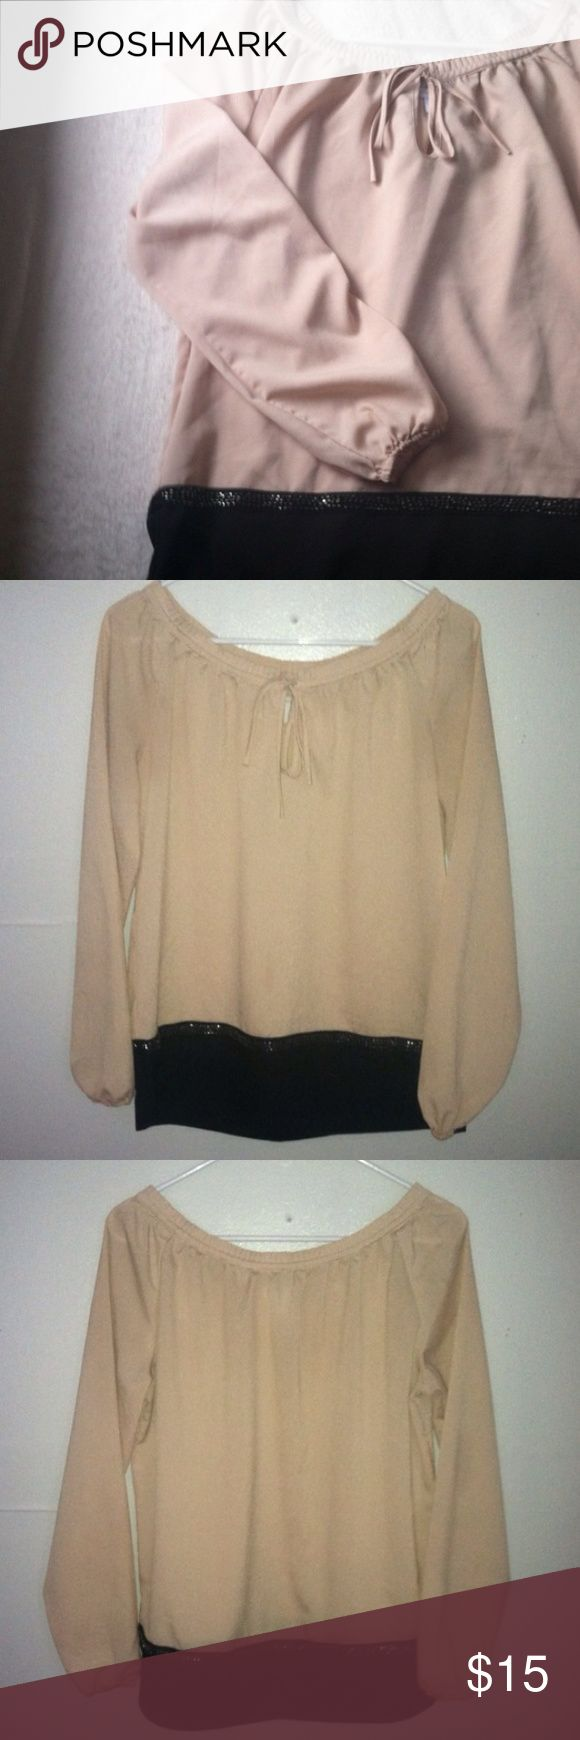 NWOT New York & Company Blouse Top Small • new without tag • embellishment a bit a move the bottom hem • tie at the neckline • round elastic cuffs on the sleeves • color: cream and black • size: small • brand: new york & company • free gift with any purchase • 15% off of all bundles • no trades • New York & Company Tops Blouses